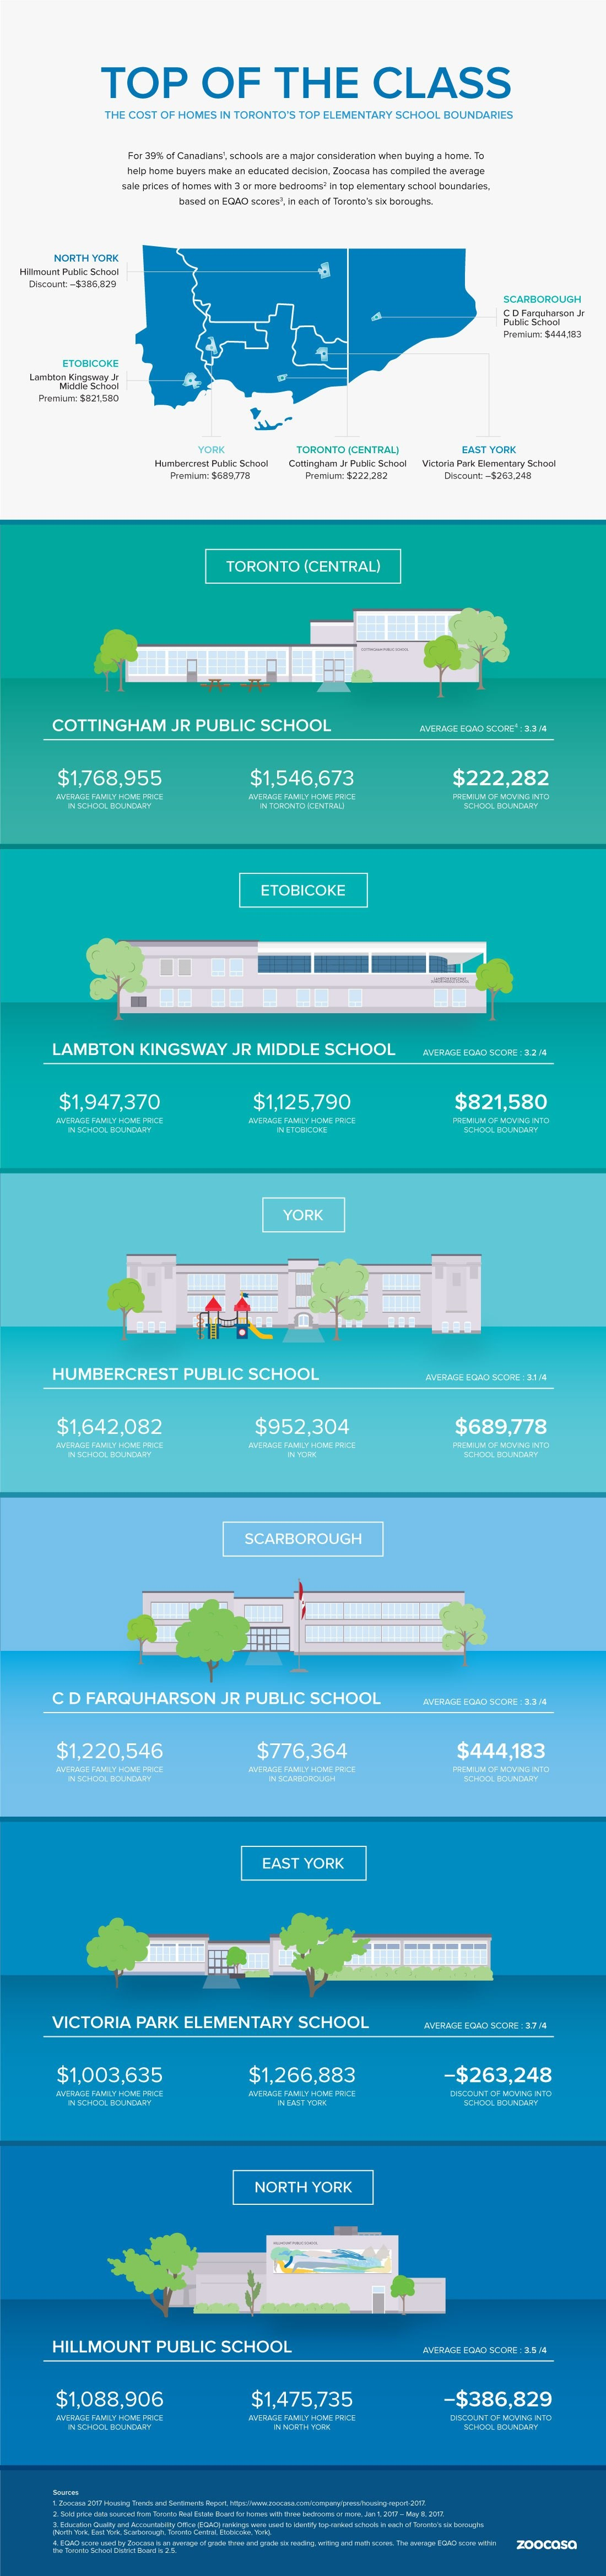 prices-and-schools-toronto-infographic-plaza